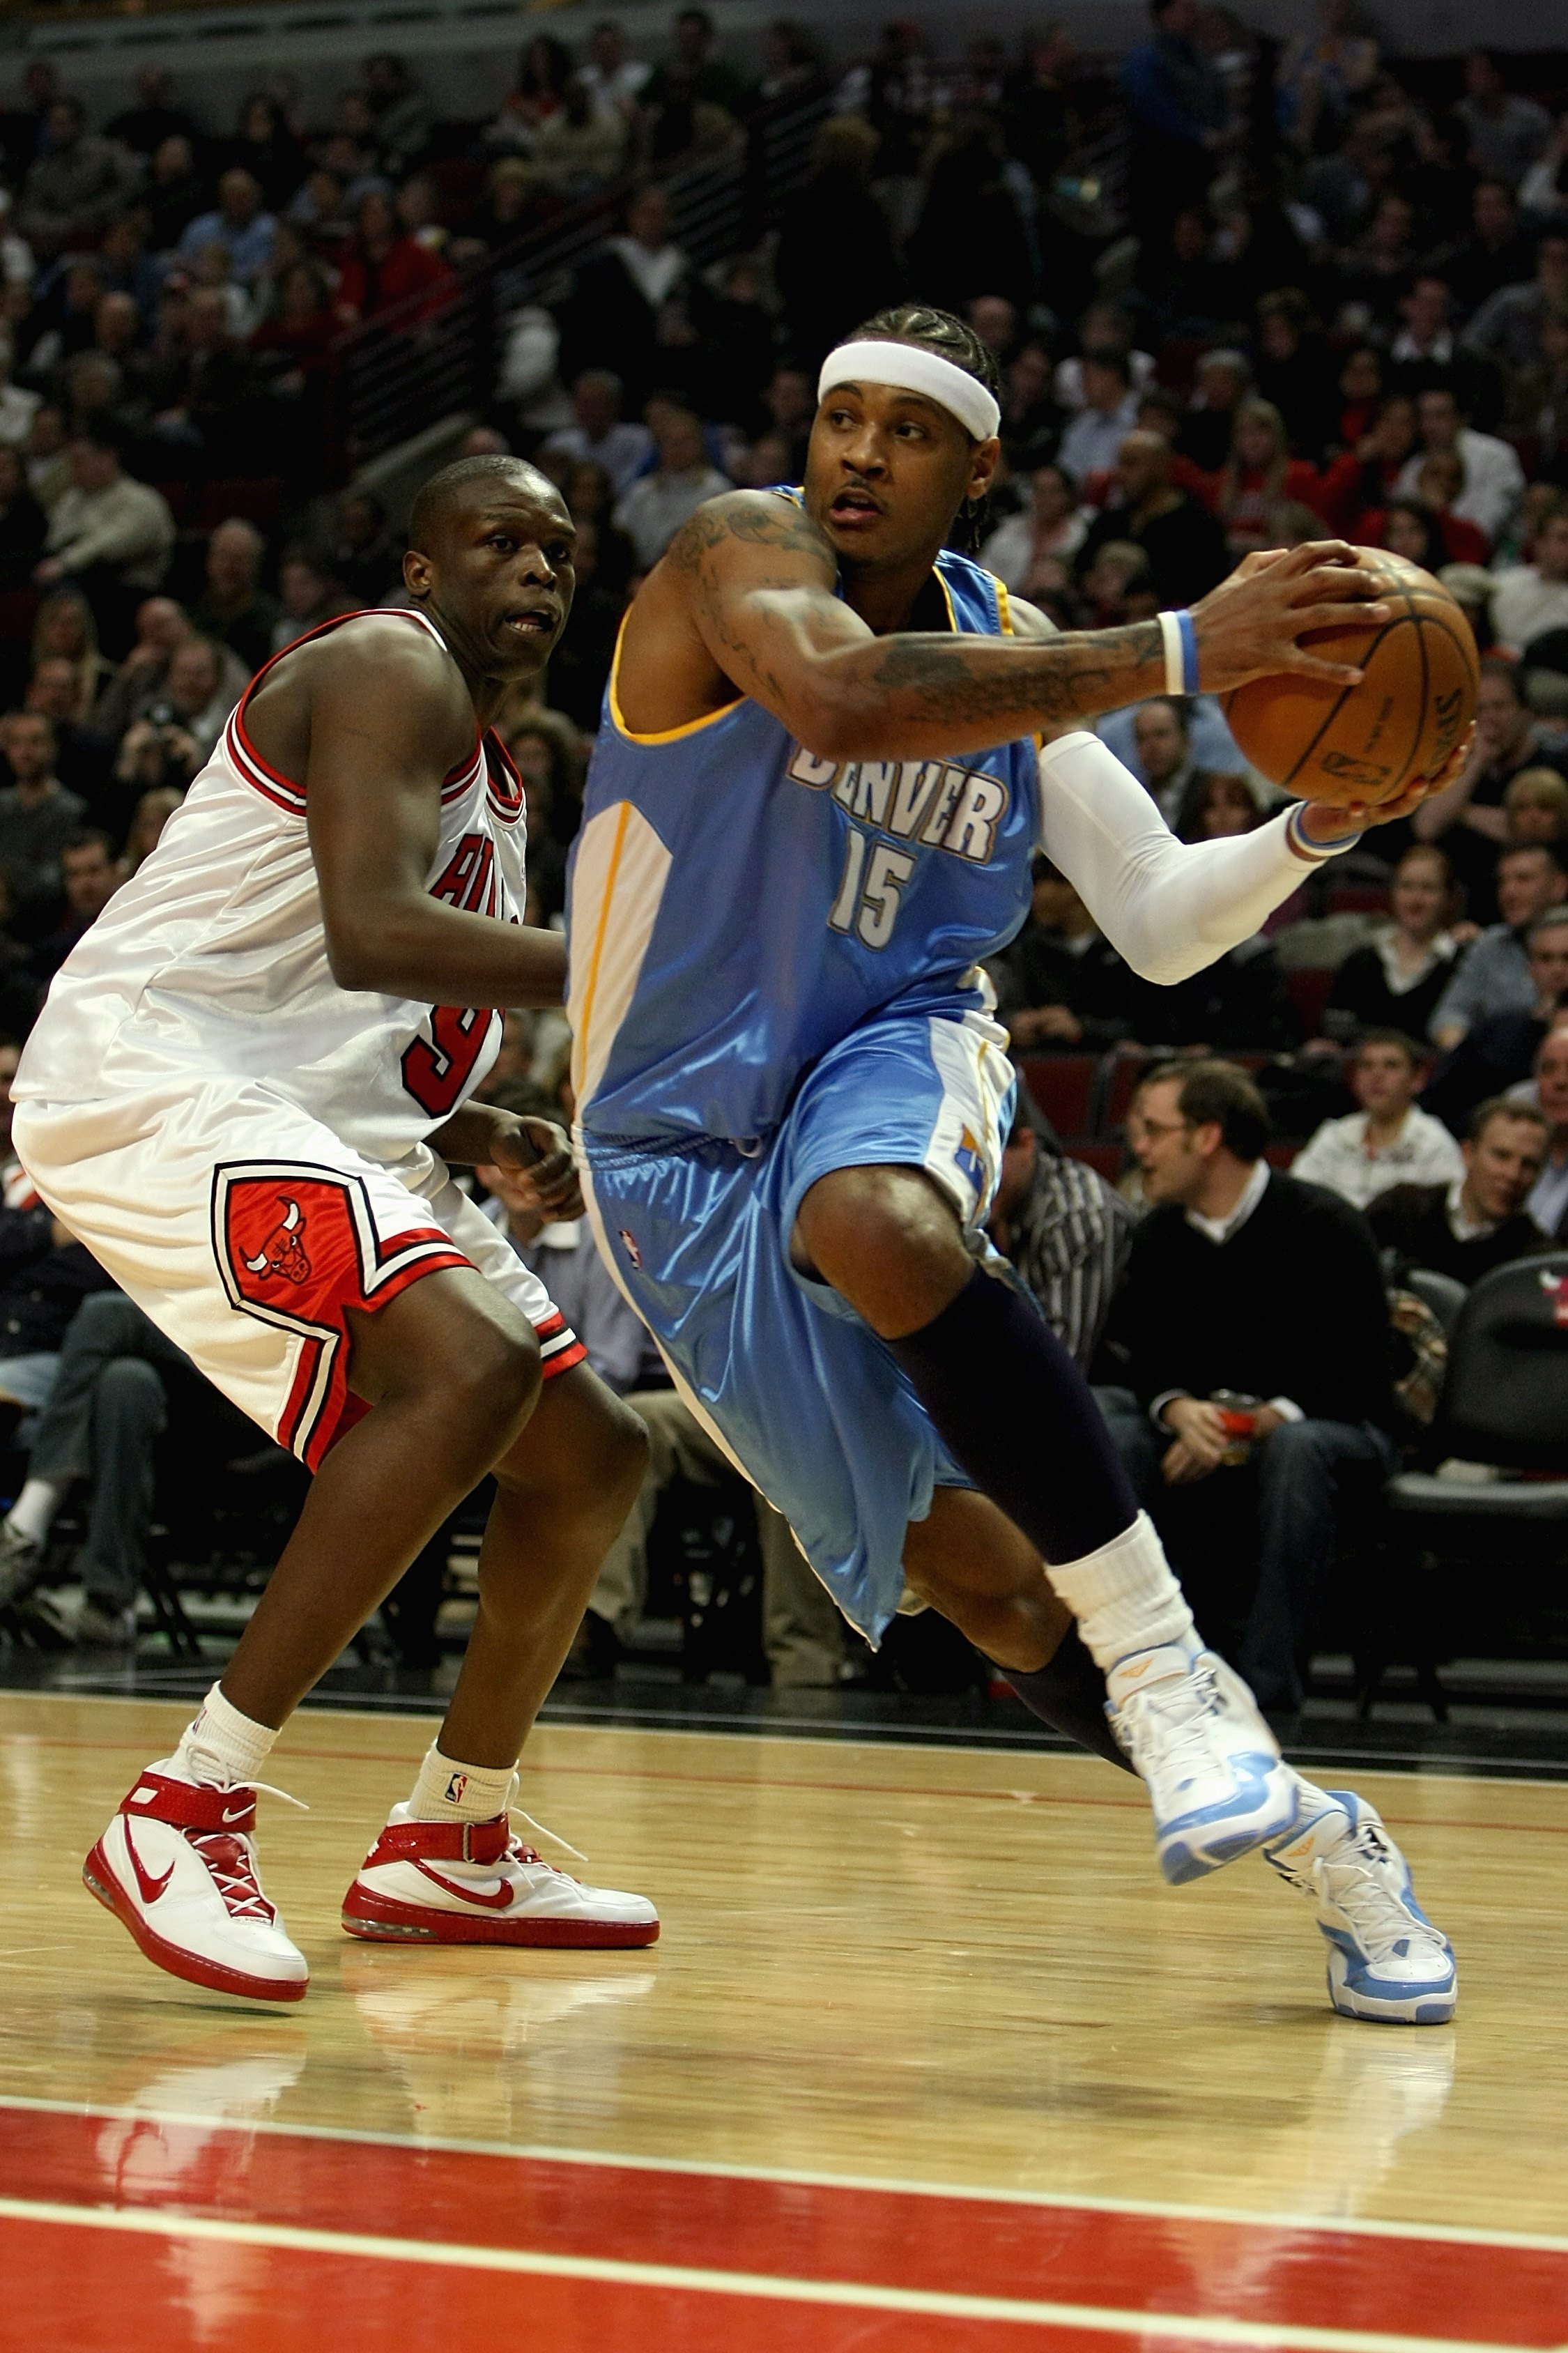 CHICAGO - FEBRUARY 22:  Carmelo Anthony #15 of the Denver Nuggets drives to the basket past Luol Deng #9 of the Chicago Bulls during the game on February 22, 2008 at the United Center in Chicago, Illinois. The Bulls won 135-121. NOTE TO USER: User express